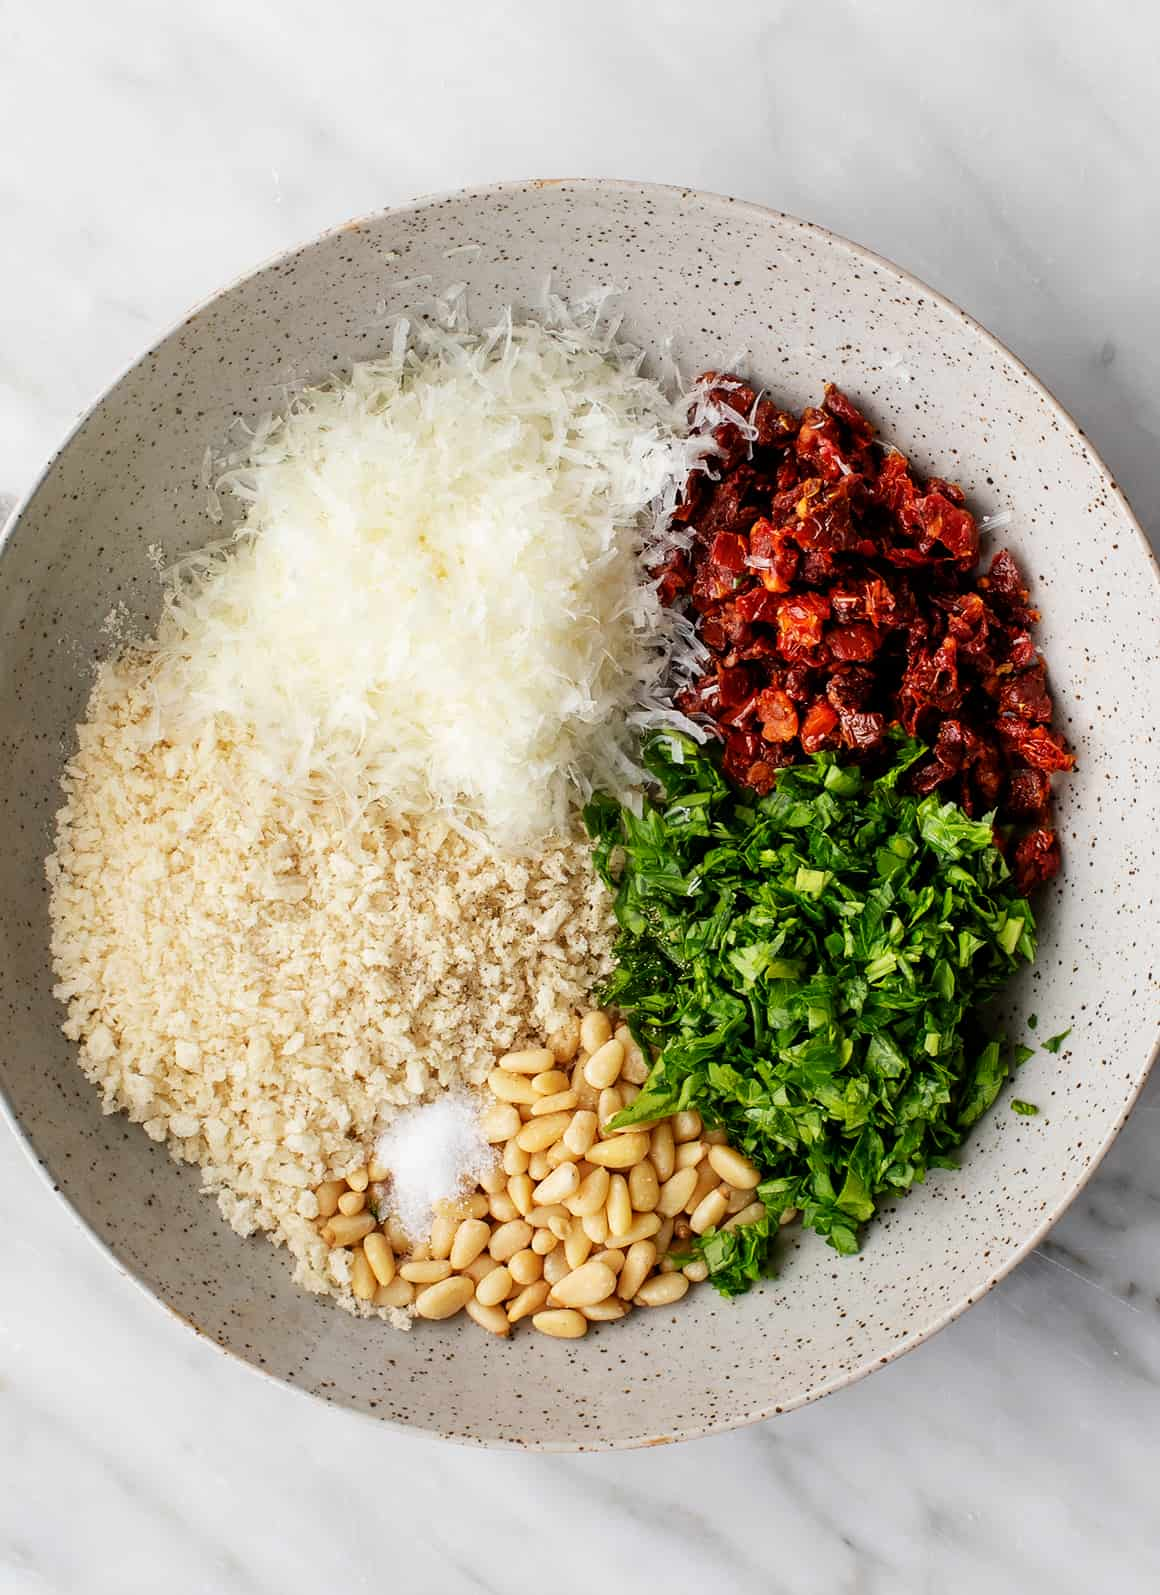 Filling ingredients in a bowl